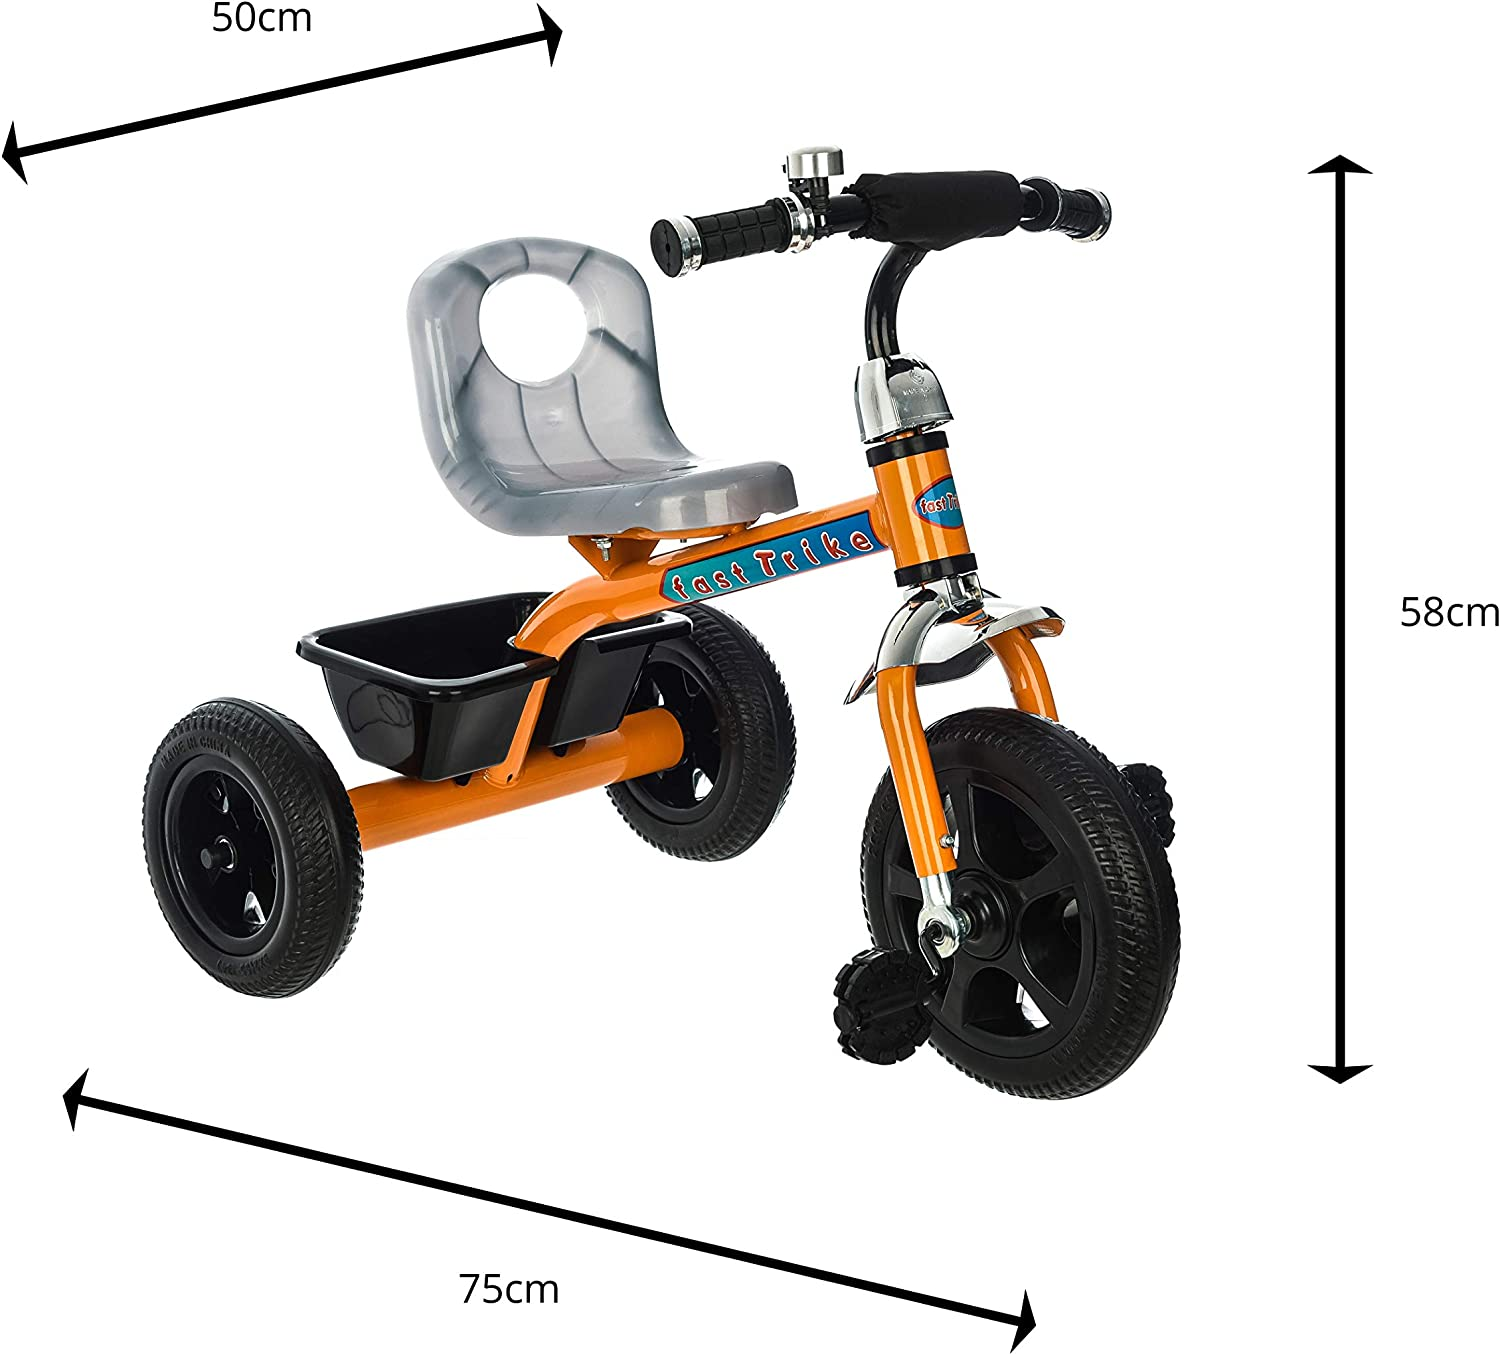 BW- 257 BLUE Costello /® NEW 3 WHEEL BABY BOY GIRL TRIKE TRICYCLE STROLLER BUGGY PUSH BIKE CHILDREN CHILD TODDLER 3-6 YEARS ✅ SELF ASSEMBLY IS REQUIRED ✅